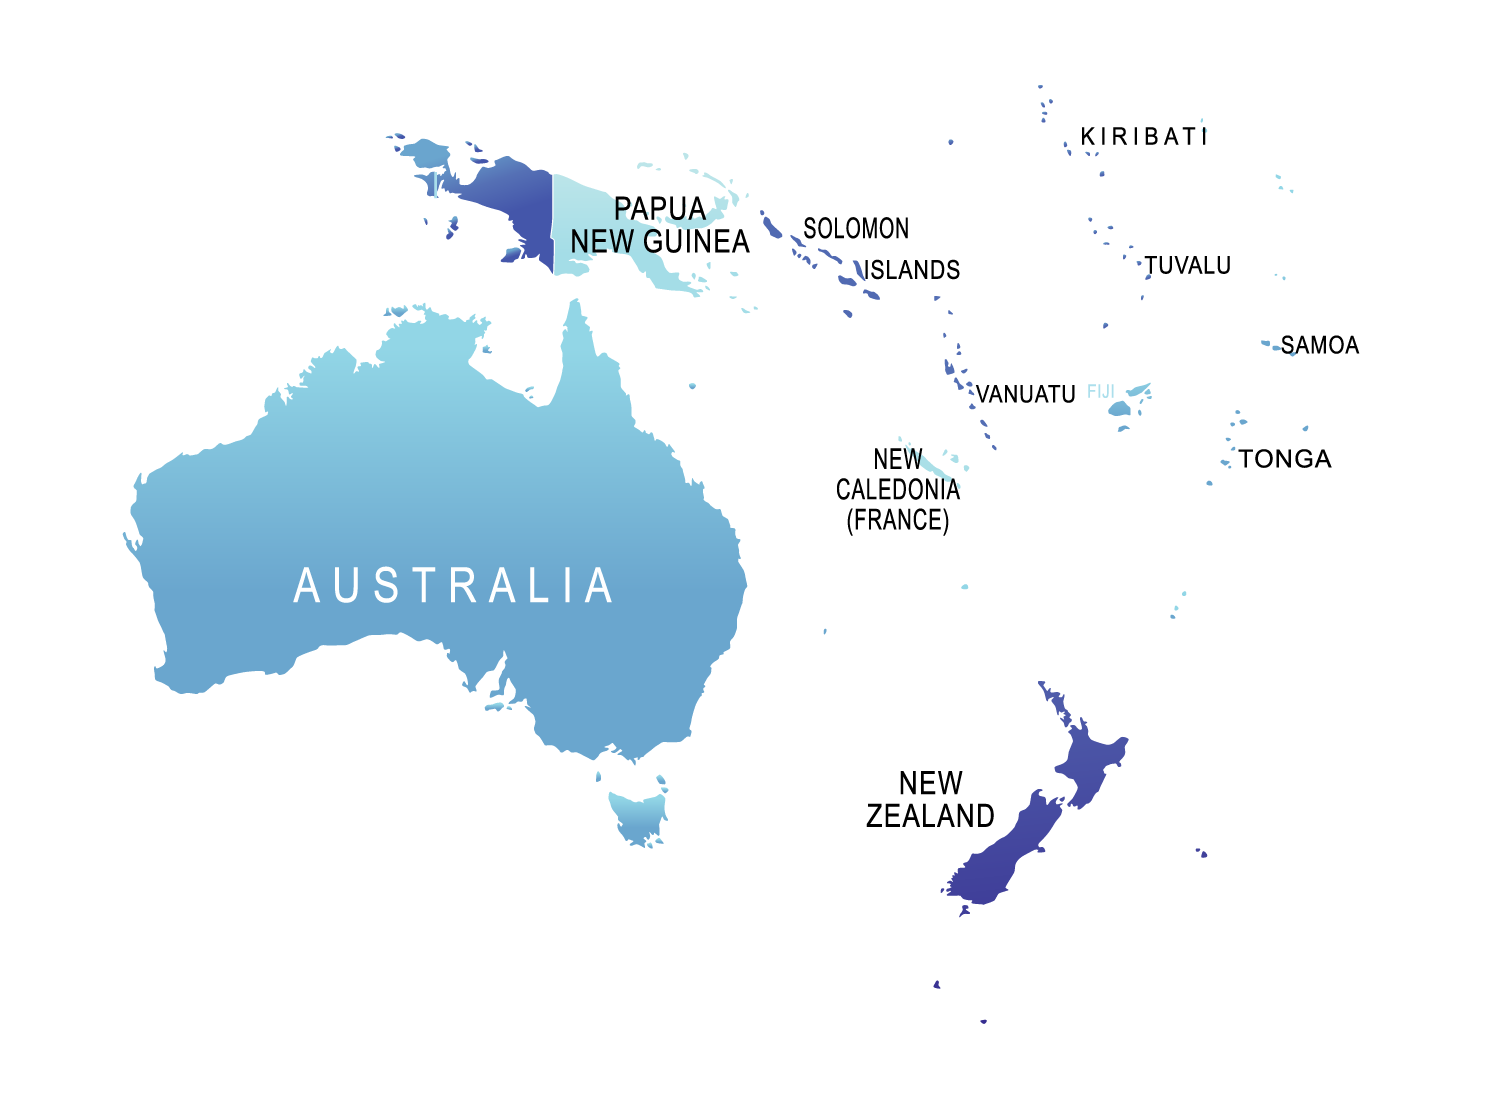 location of papua new guinea on world map #4, wiring diagram, location of papua new guinea on world map